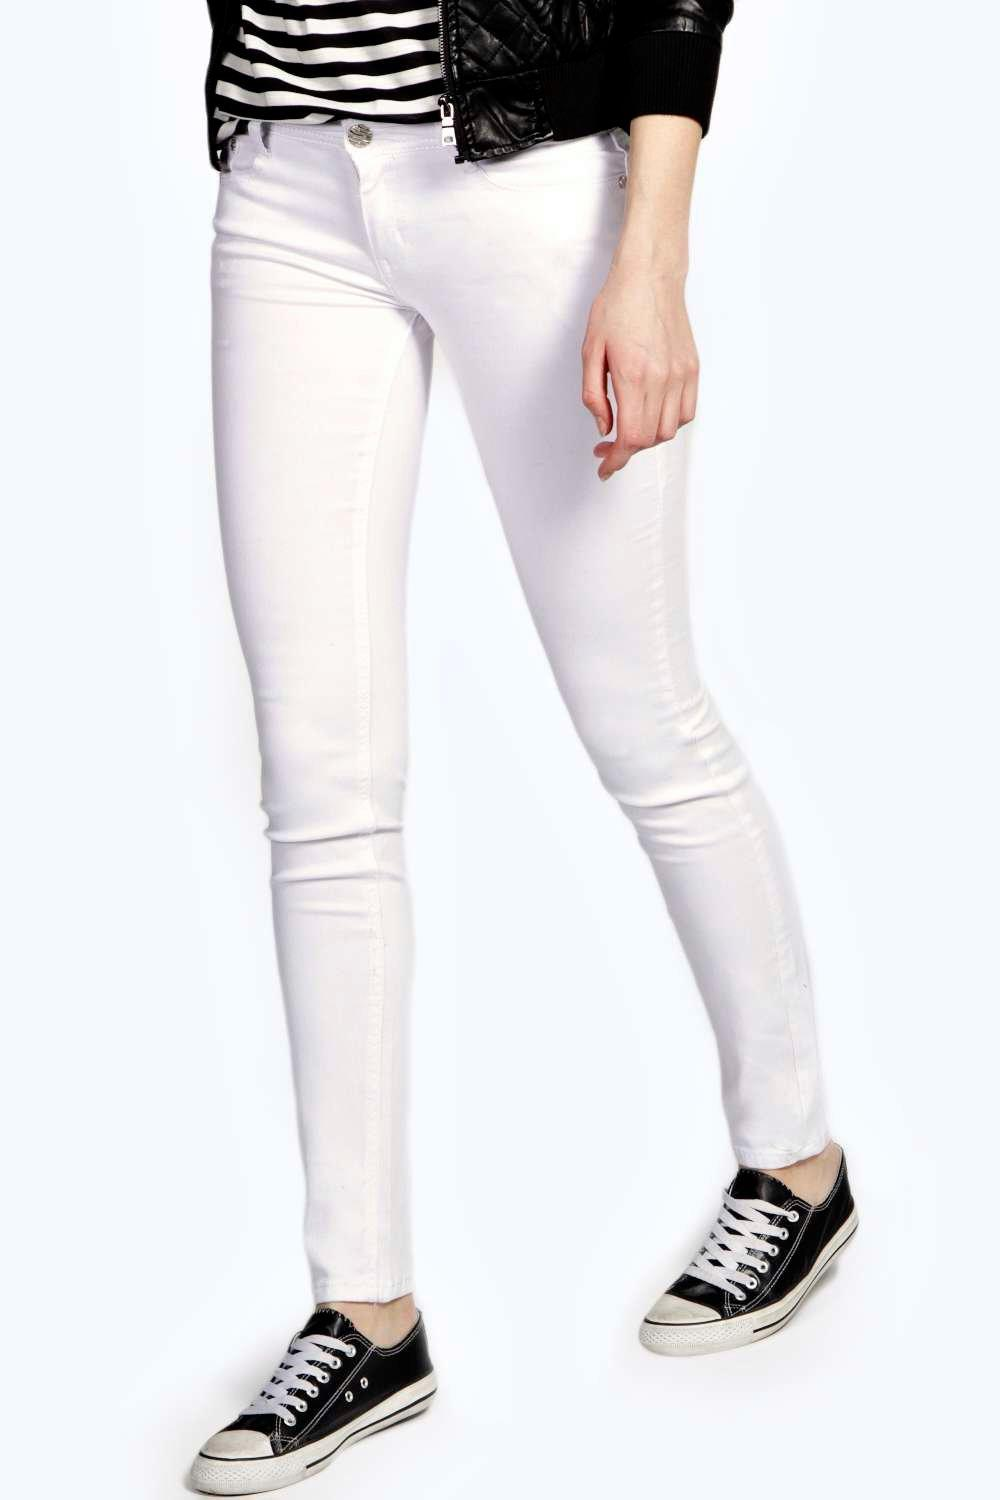 Evie Low Rise Super Skinny White Jeans at boohoo.com